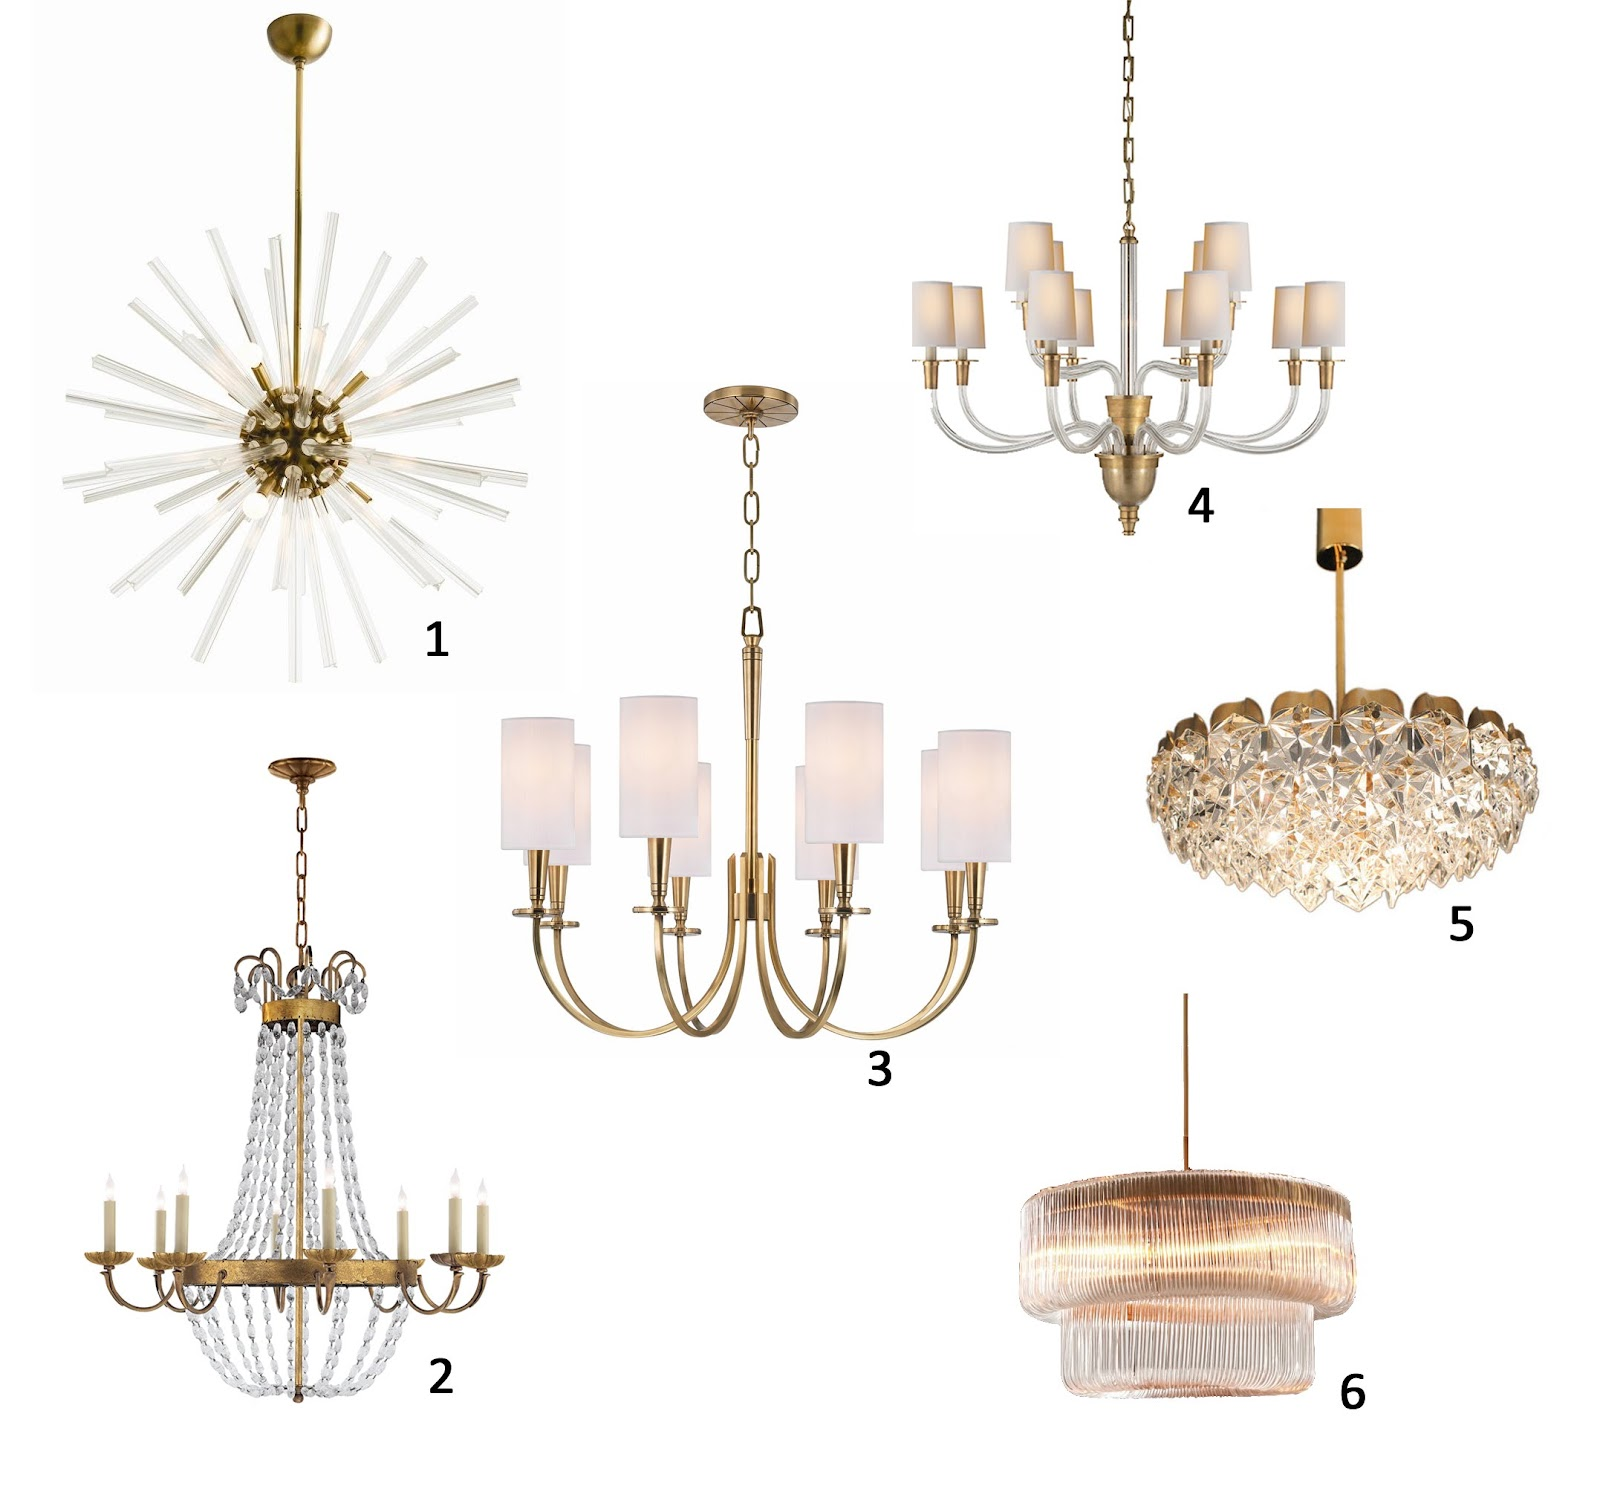 A Roundup Of My Favourite Brass Chandeliers